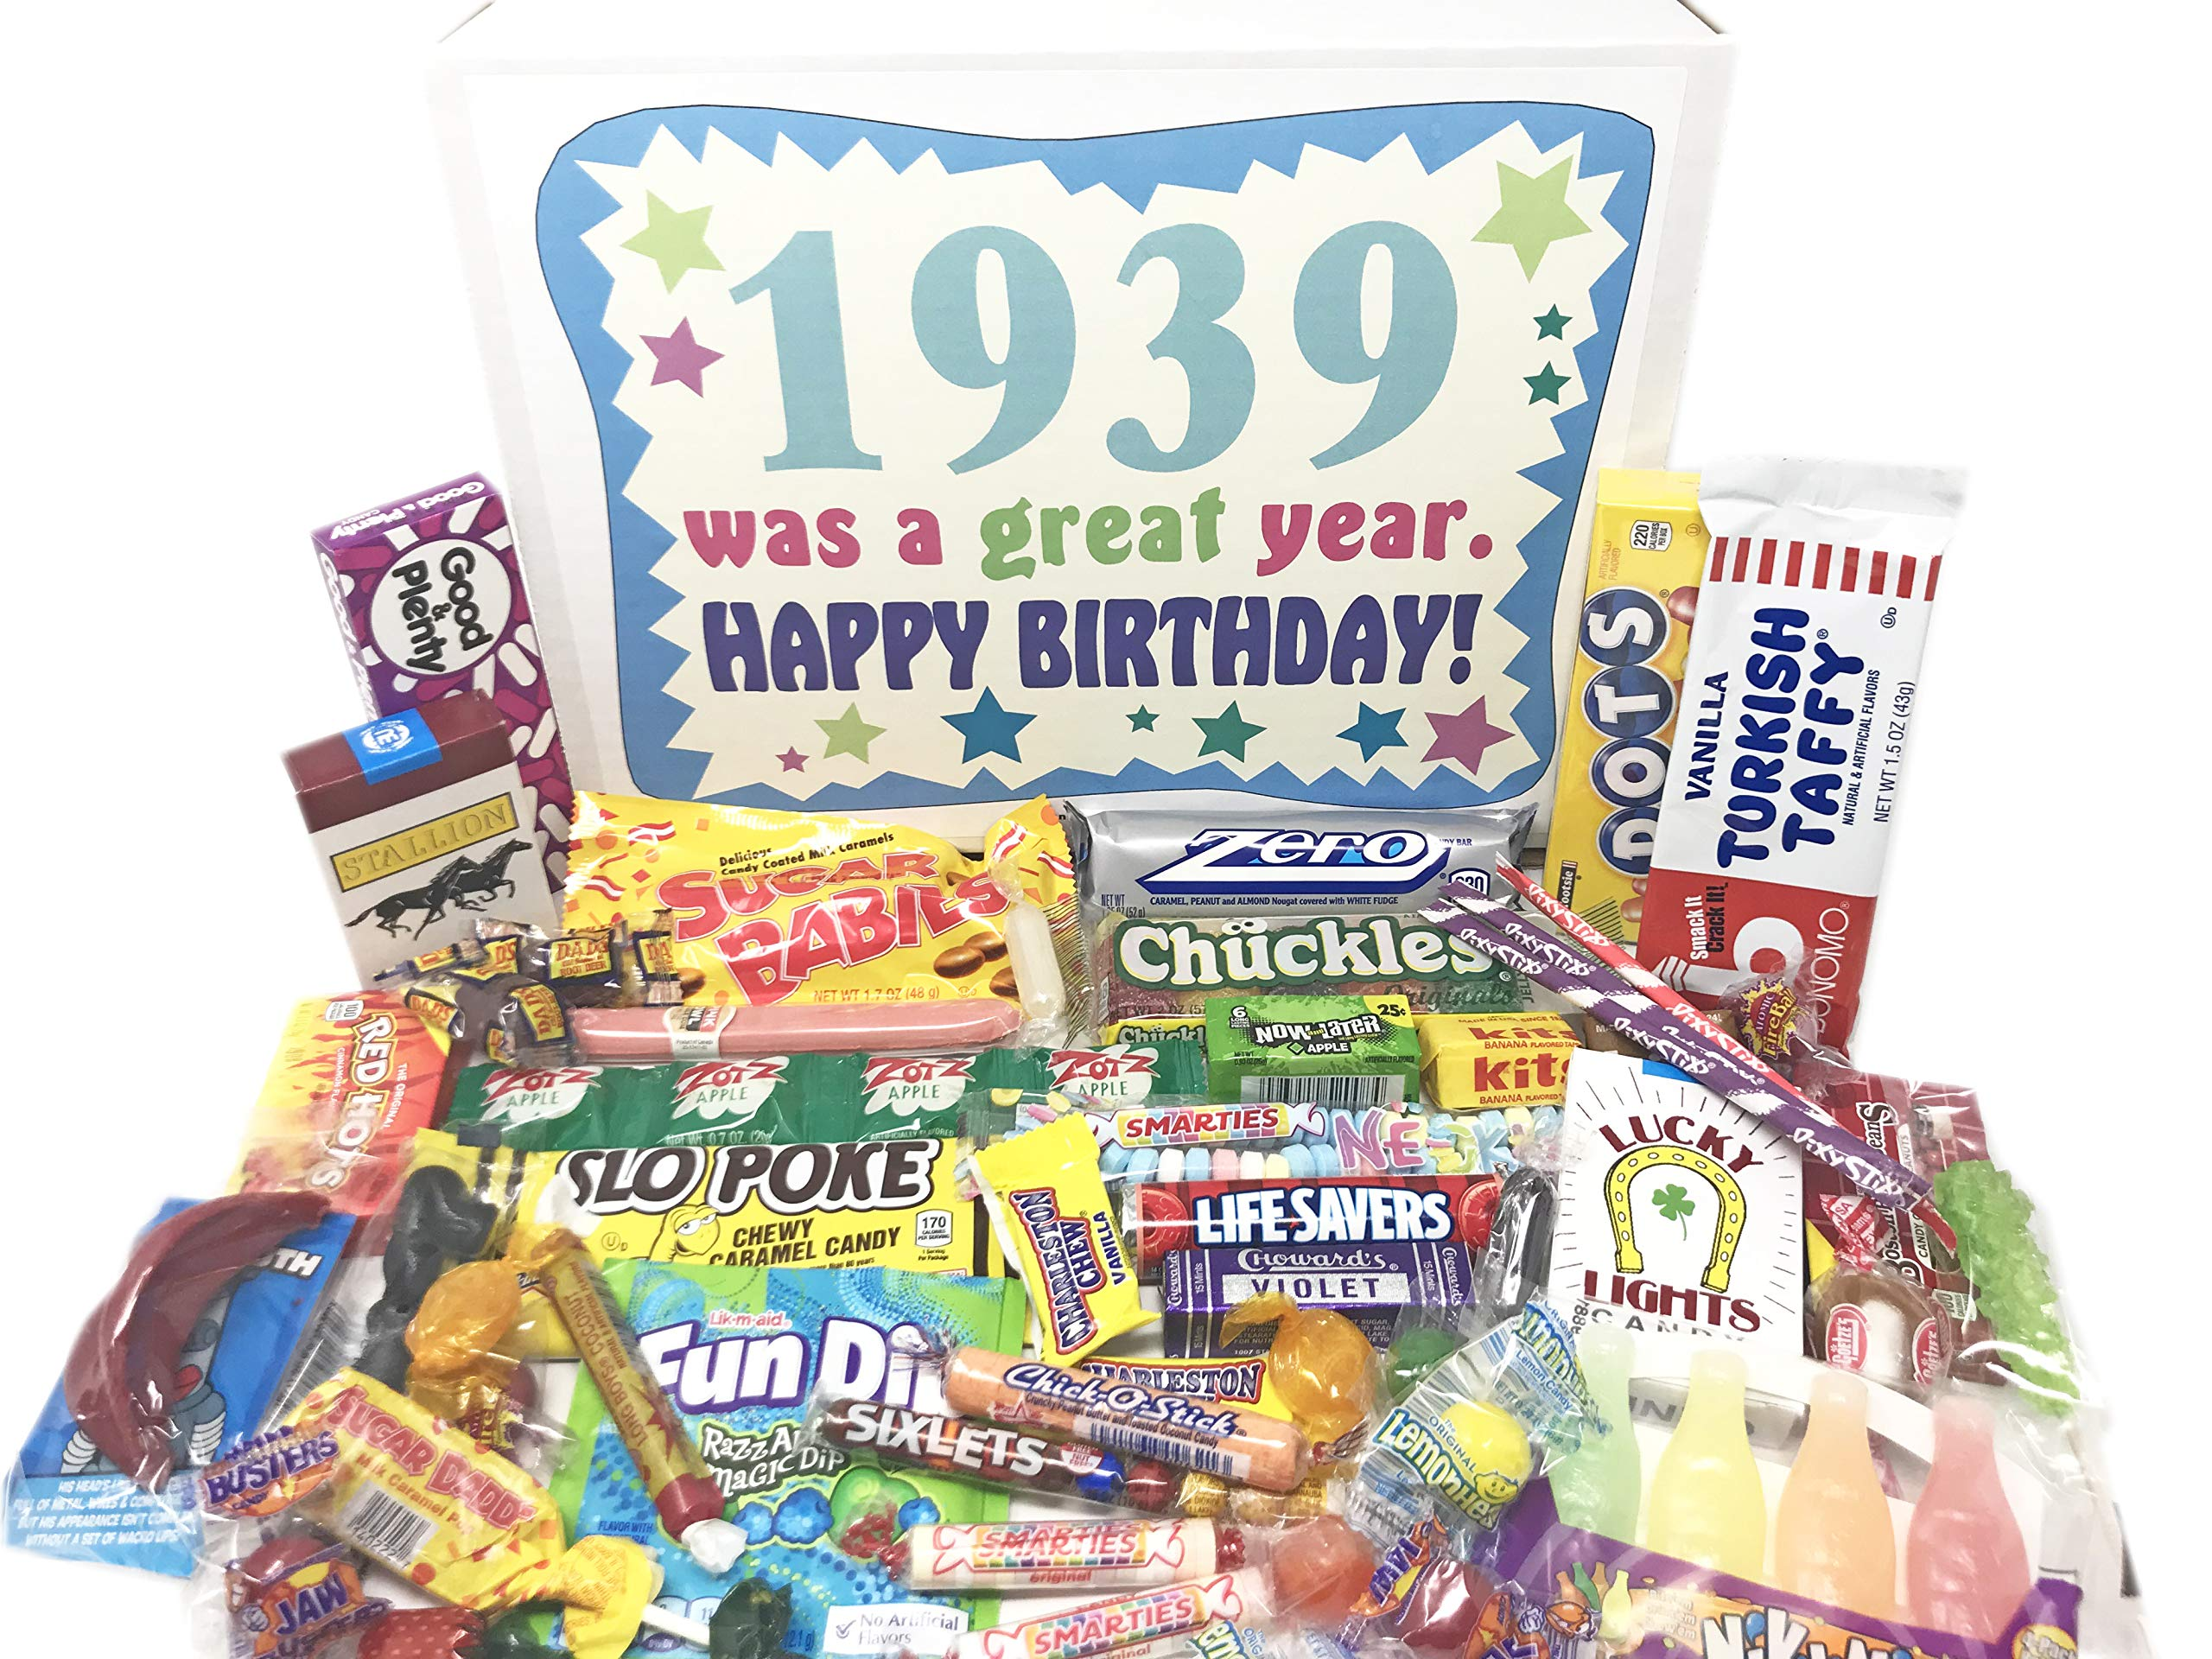 Woodstock Candy ~ 1939 BIRTHDAY GIFTS - 80th Birthday Candy Gift Box From Childhood - 80 Year Old Birthday Gifts - 80th Birthday Candy Gifts for 80 Year Old Man or Woman Born 1939 by Woodstock Candy